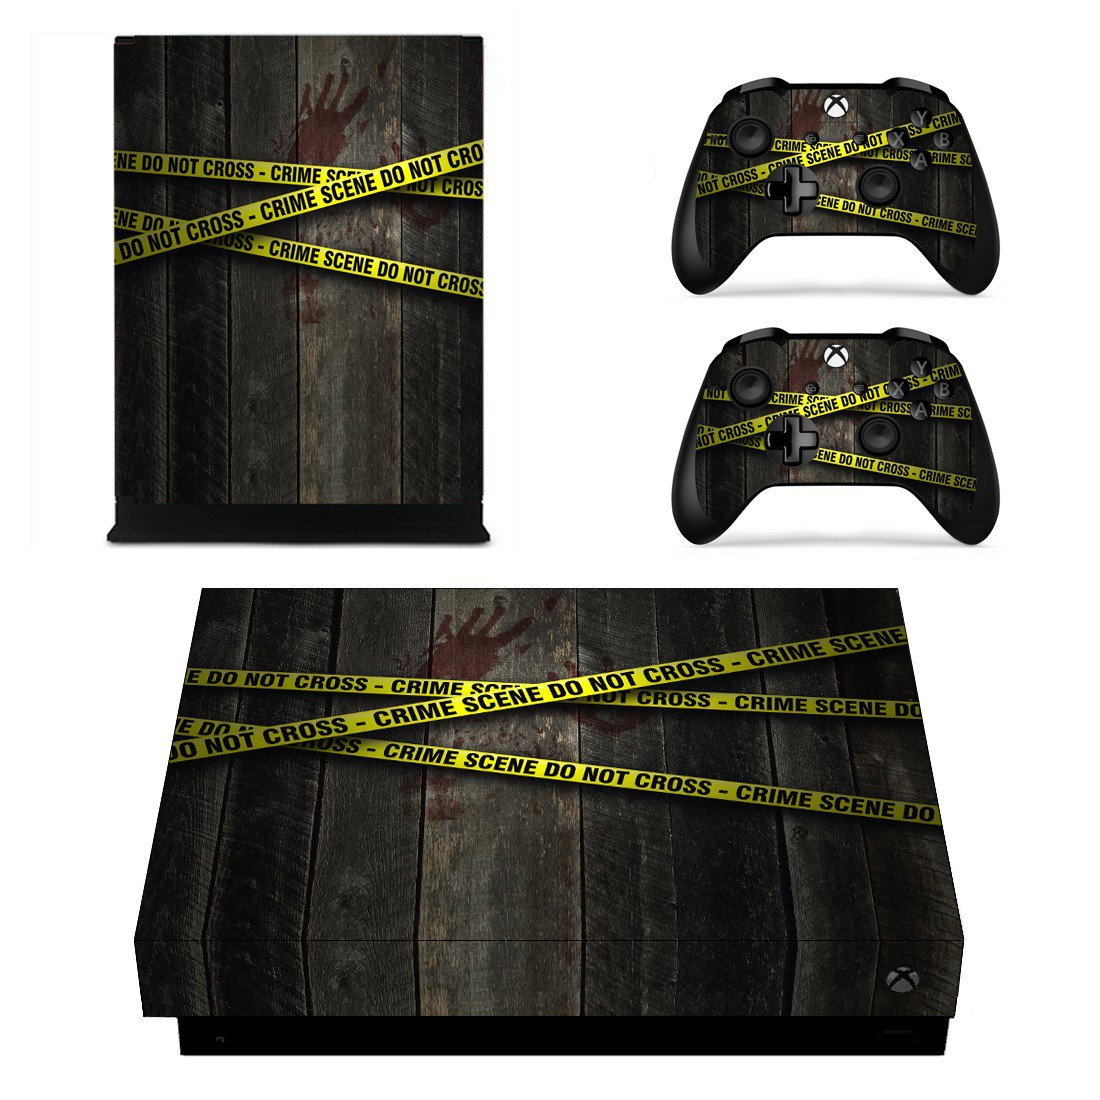 Crime Scene Do not cross xbox one X skin decal for console and 2 controllers